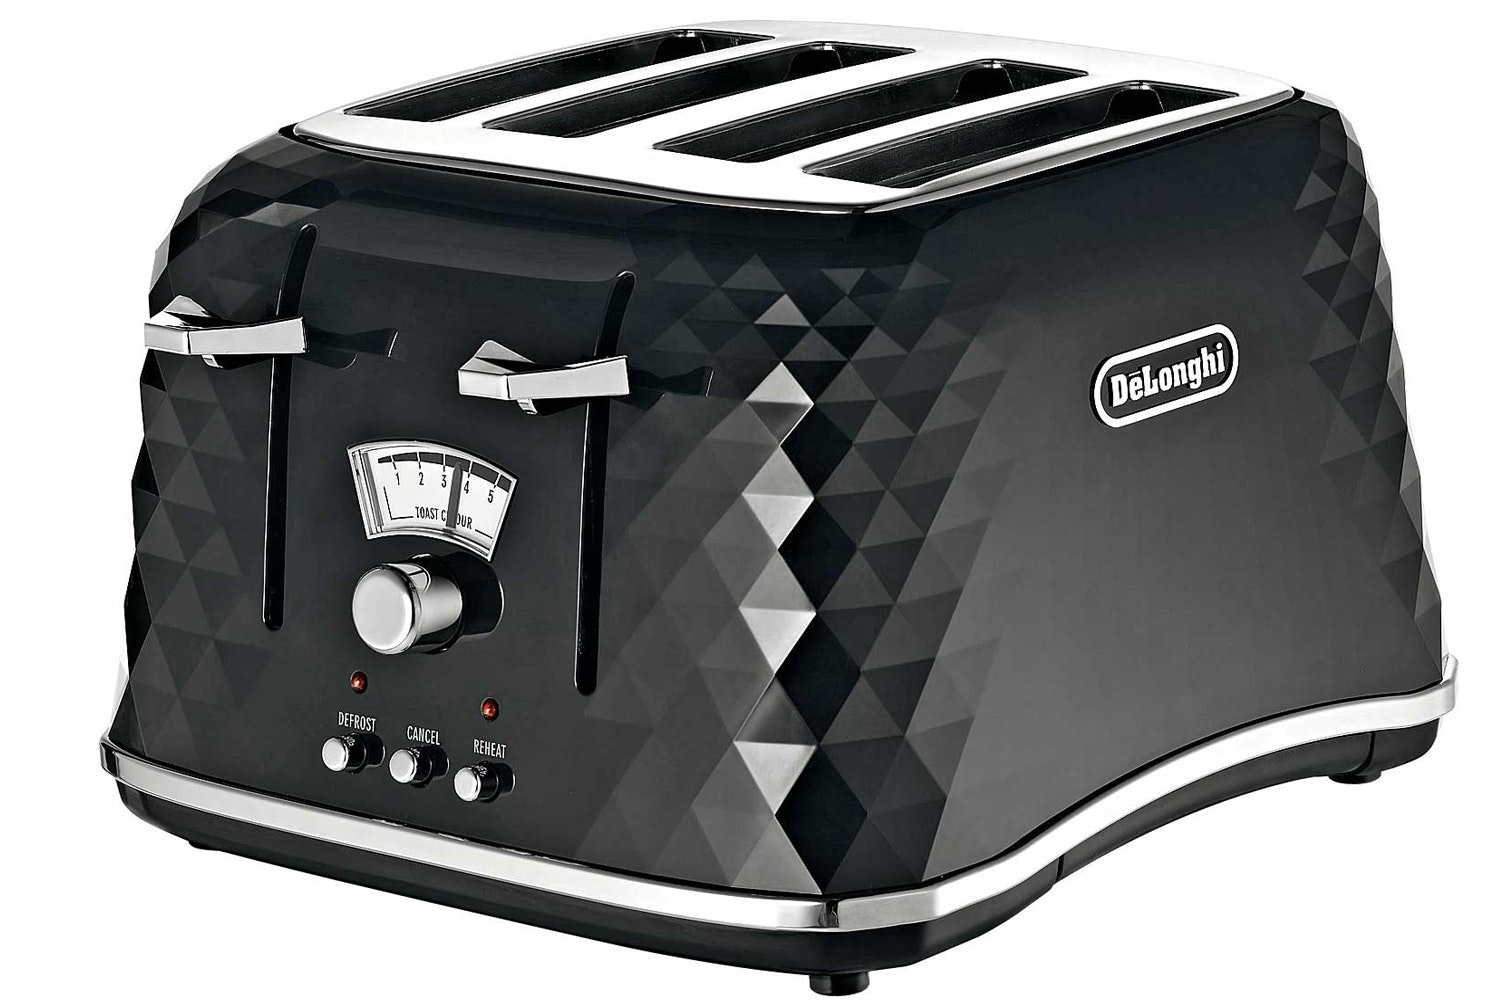 DeLonghi Brilliante 4 Slice Toaster | Black